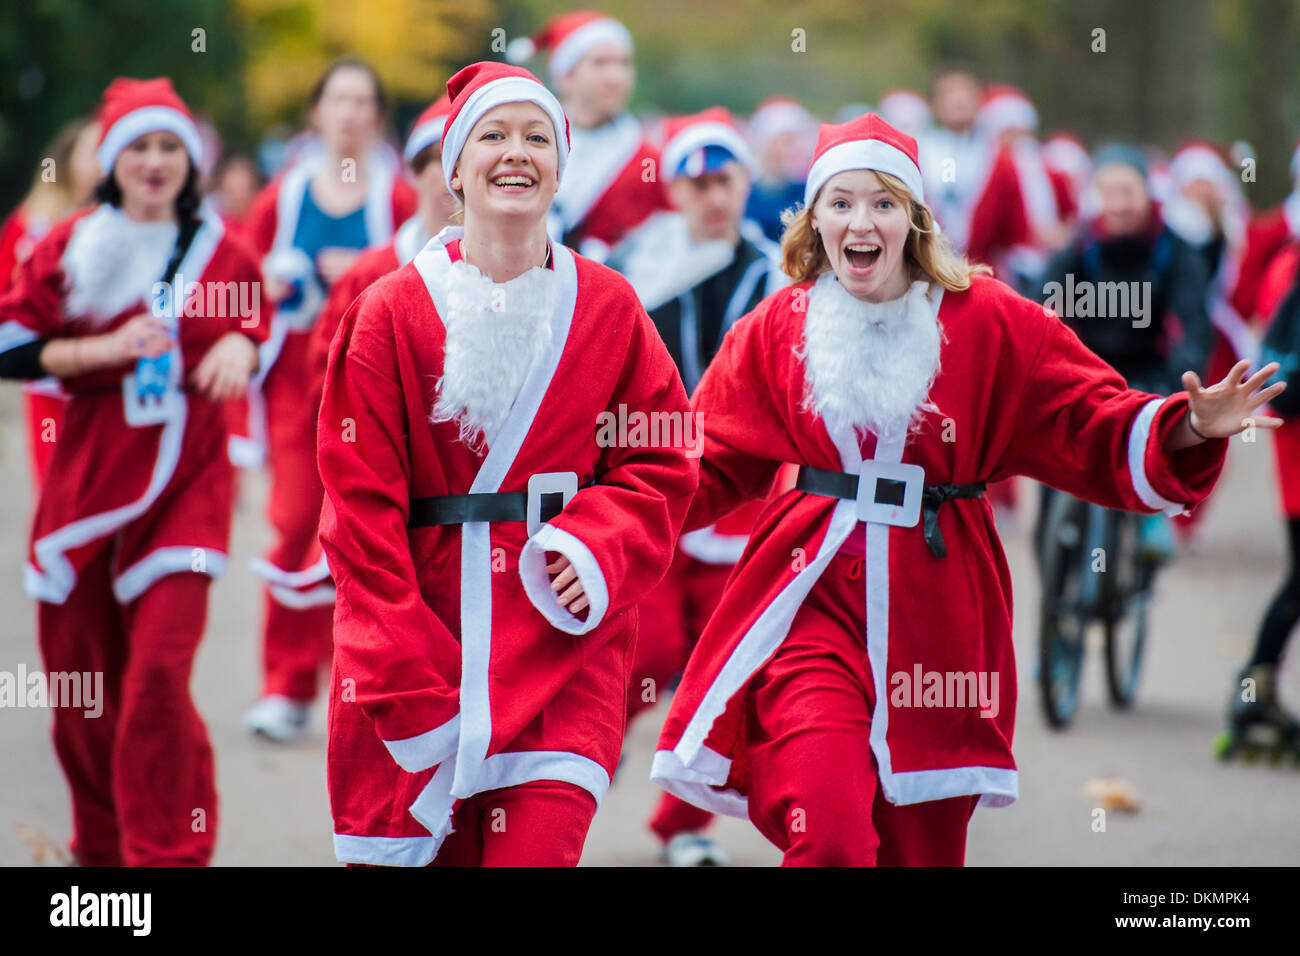 London, UK. 07th Dec, 2013. The London Santa Run, a 6k festive charity fun run, with around 2,000 Santa's. It  is organised to raise funds for Disability Snowsport UK, a national charity helping people with disabilities to access the thrill of snowsports. Battersea Park, London, UK 07 Dec 2013. Credit:  Guy Bell/Alamy Live News - Stock Image